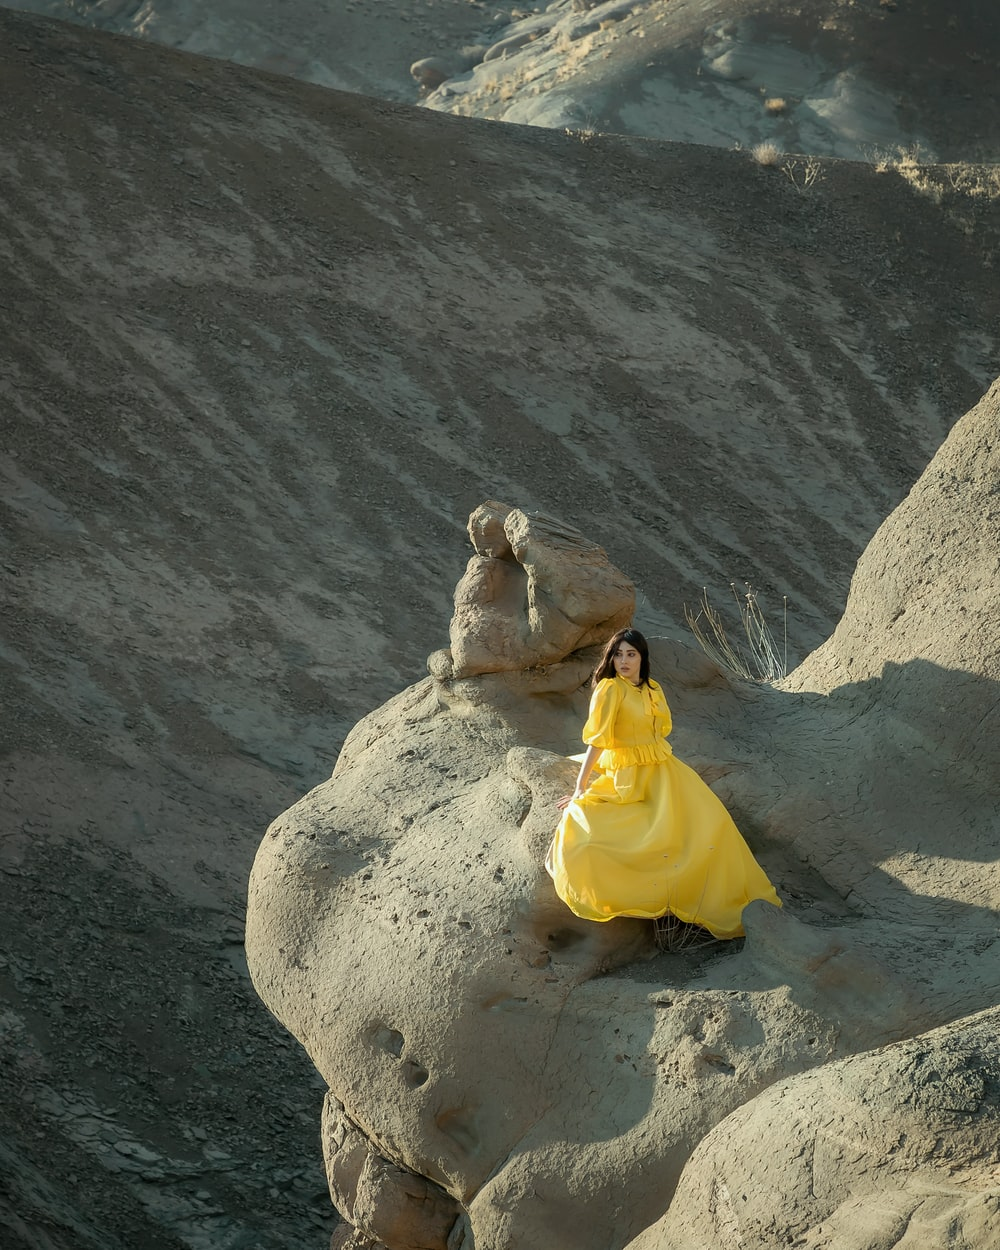 woman in yellow dress sitting on rock formation